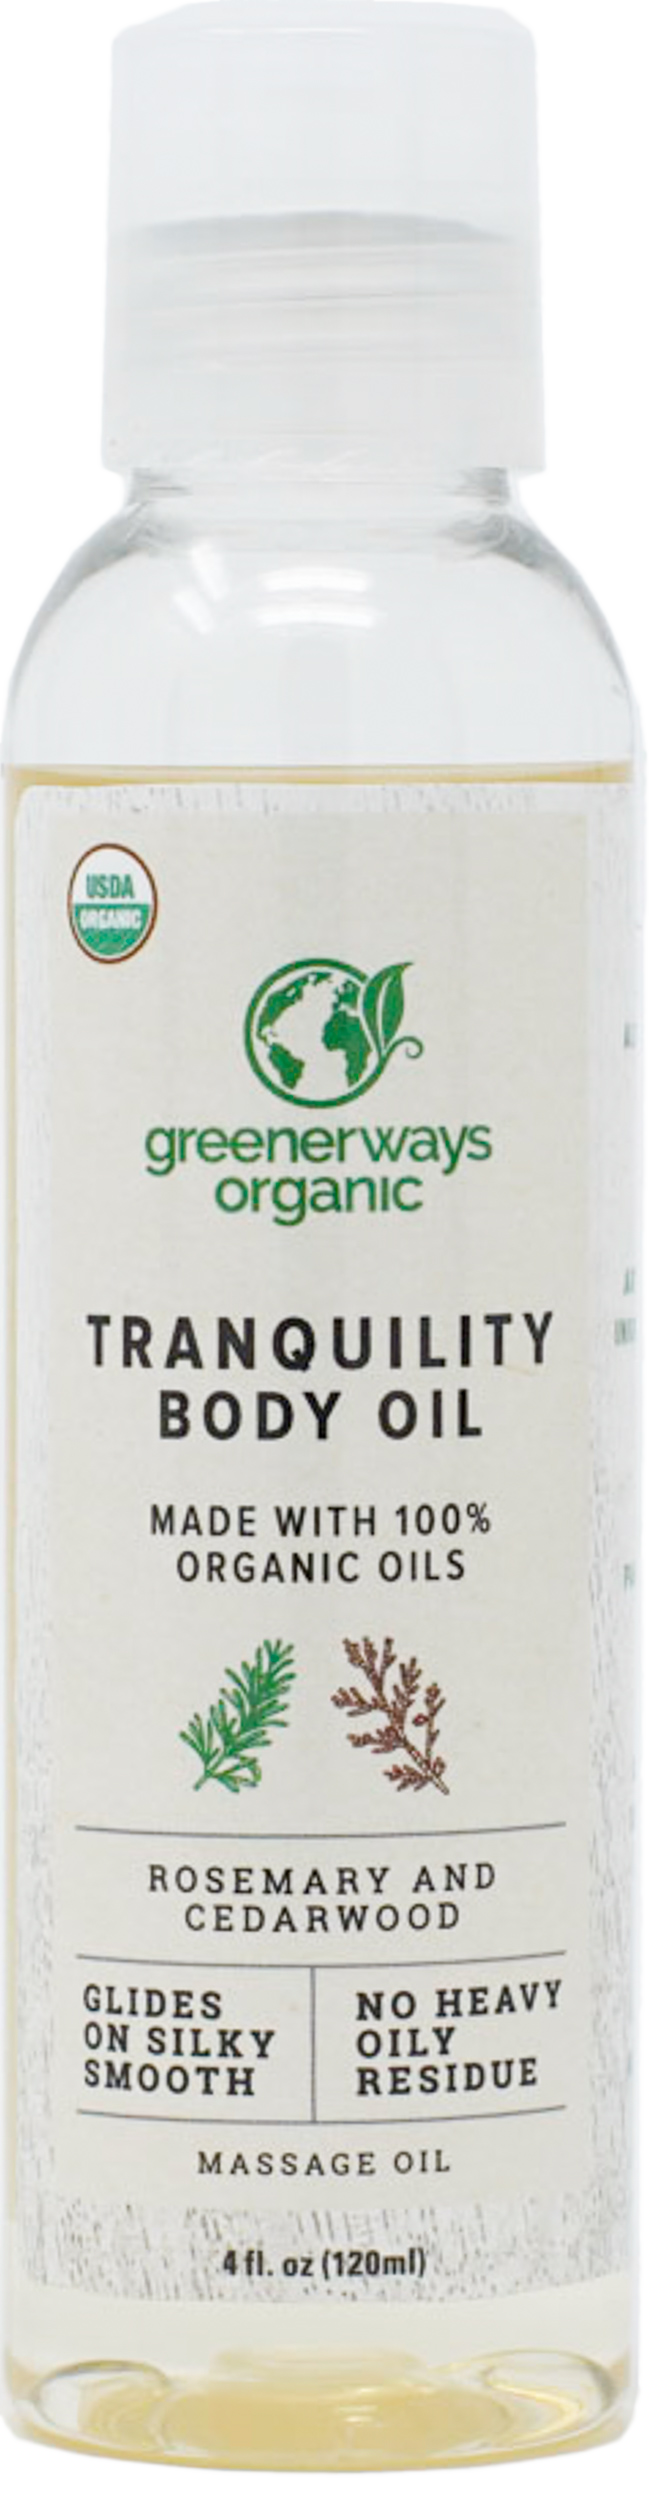 Greenerways Organic Tranquility Body Oil (4oz)